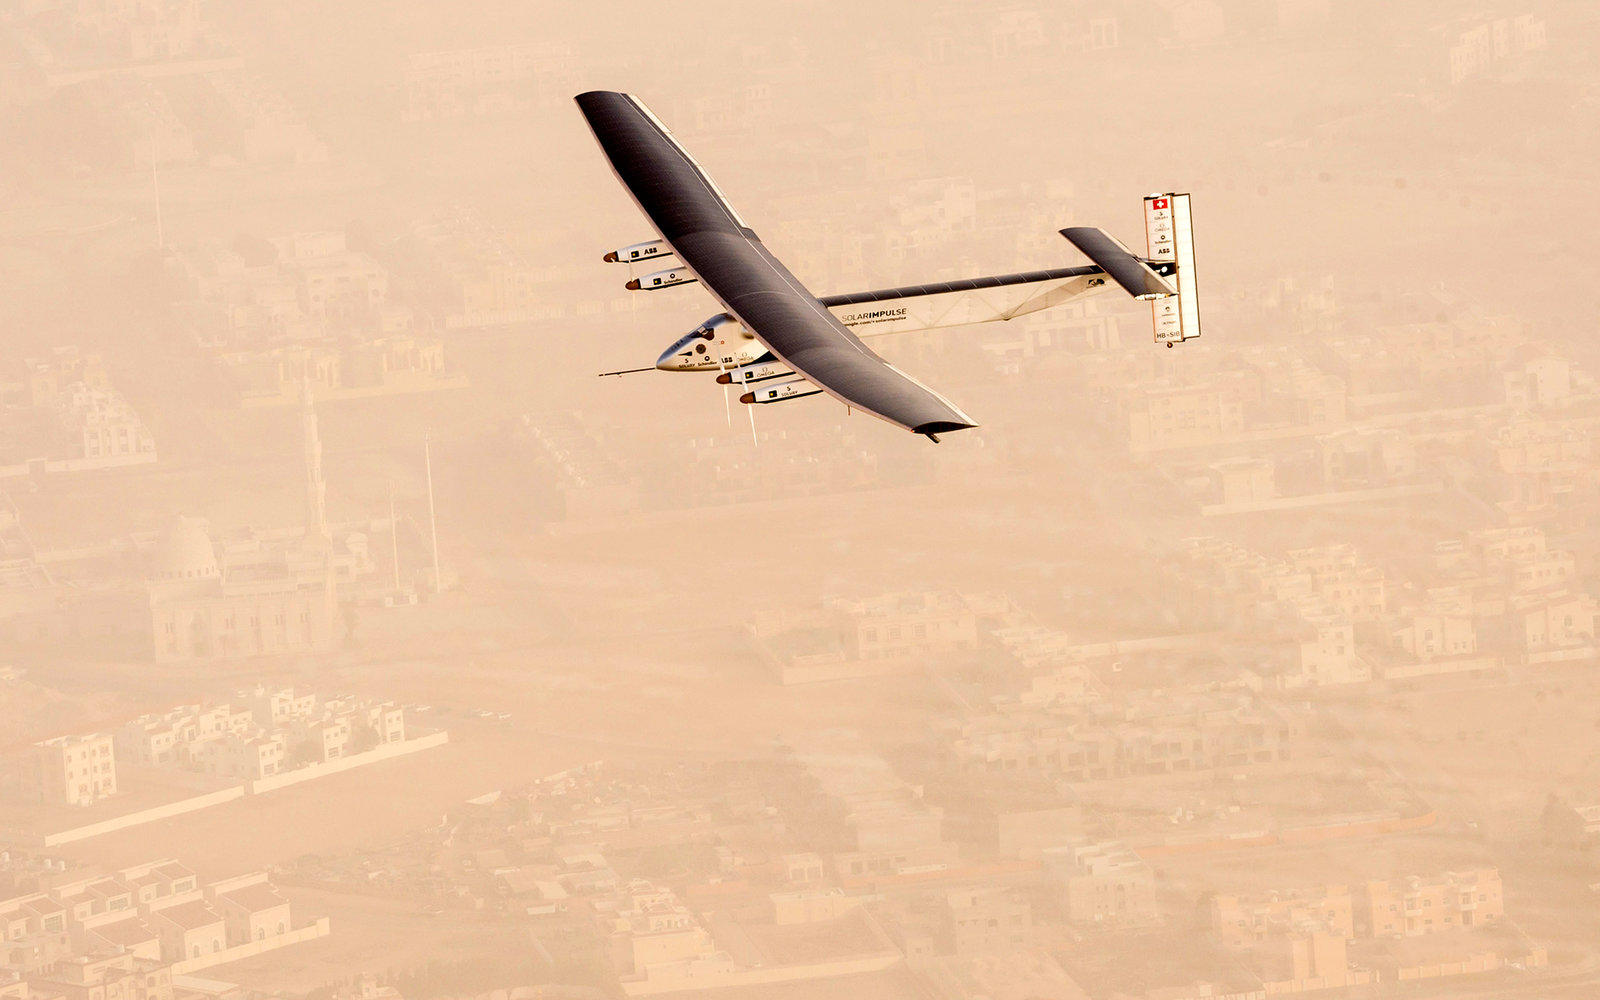 Solar Impulse over Abu Dhabi